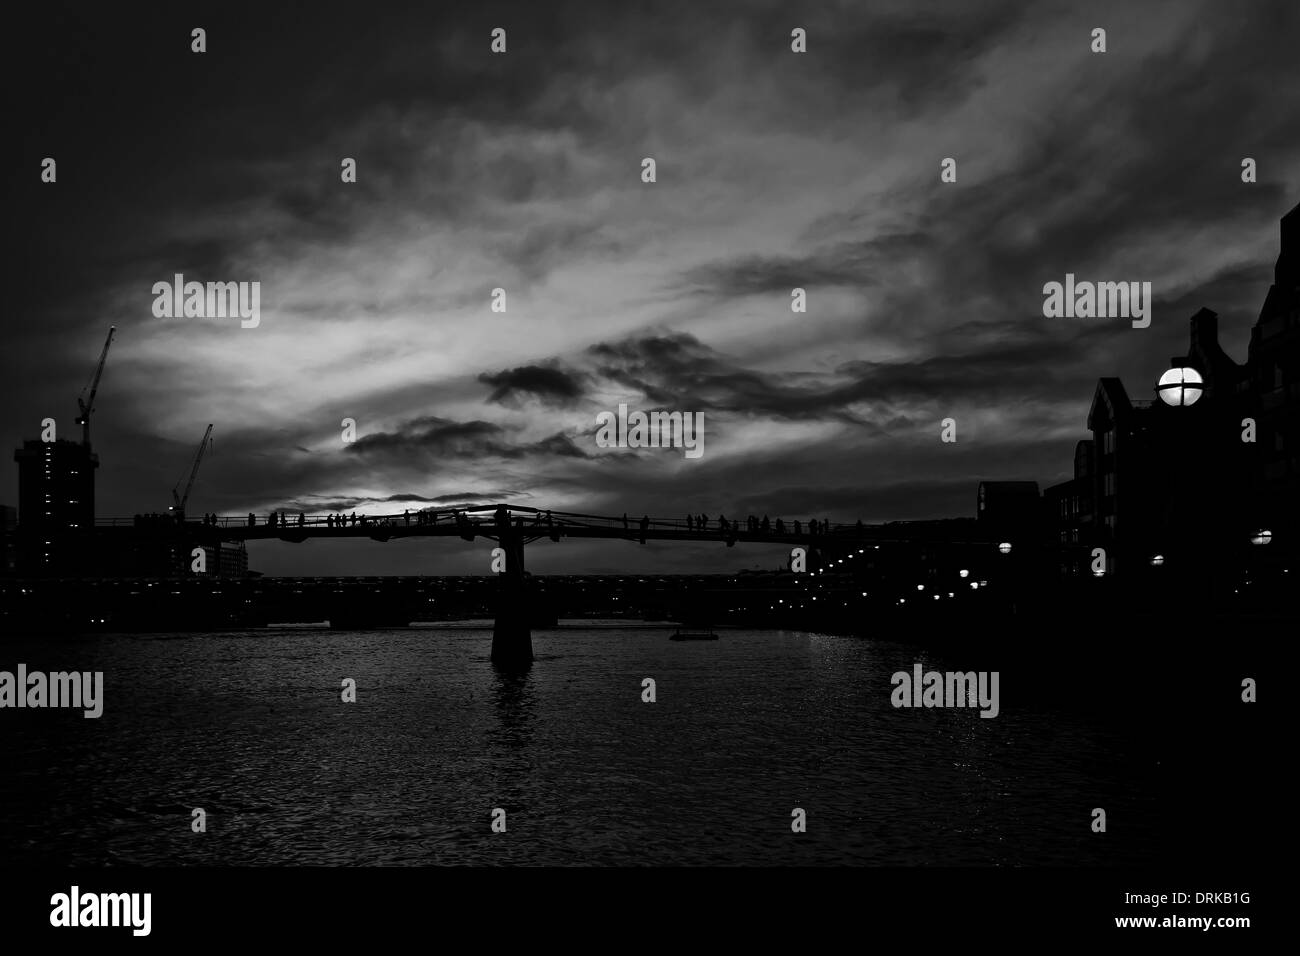 A Black And White Image Of The River Thames With Millennium Bridge At Night